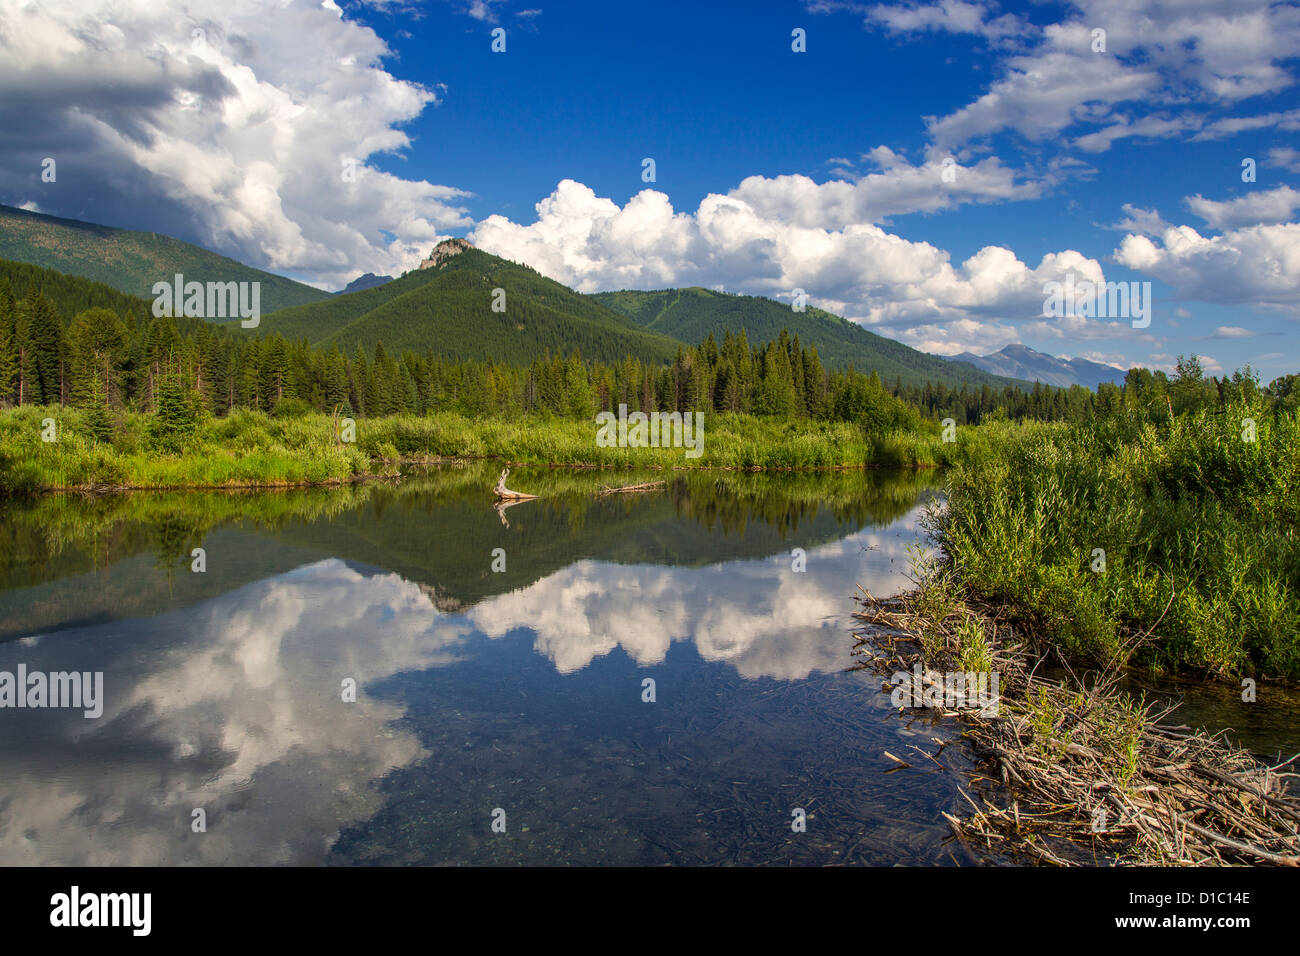 Beaver pond along the Flathead River near Fernie, British Columbia, Canada - Stock Image